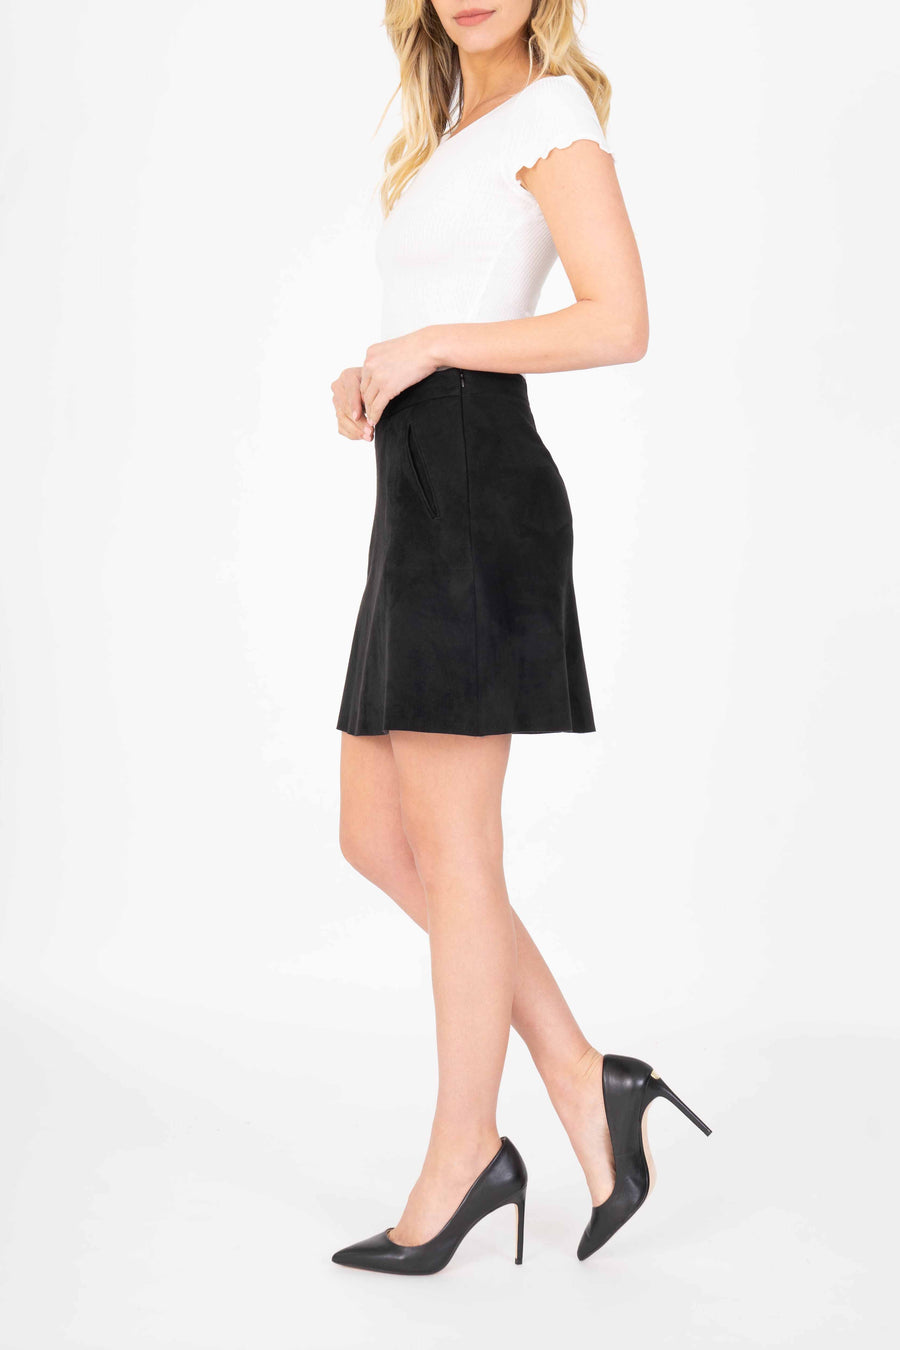 Colette Faux Suede Skirt - level99jeans